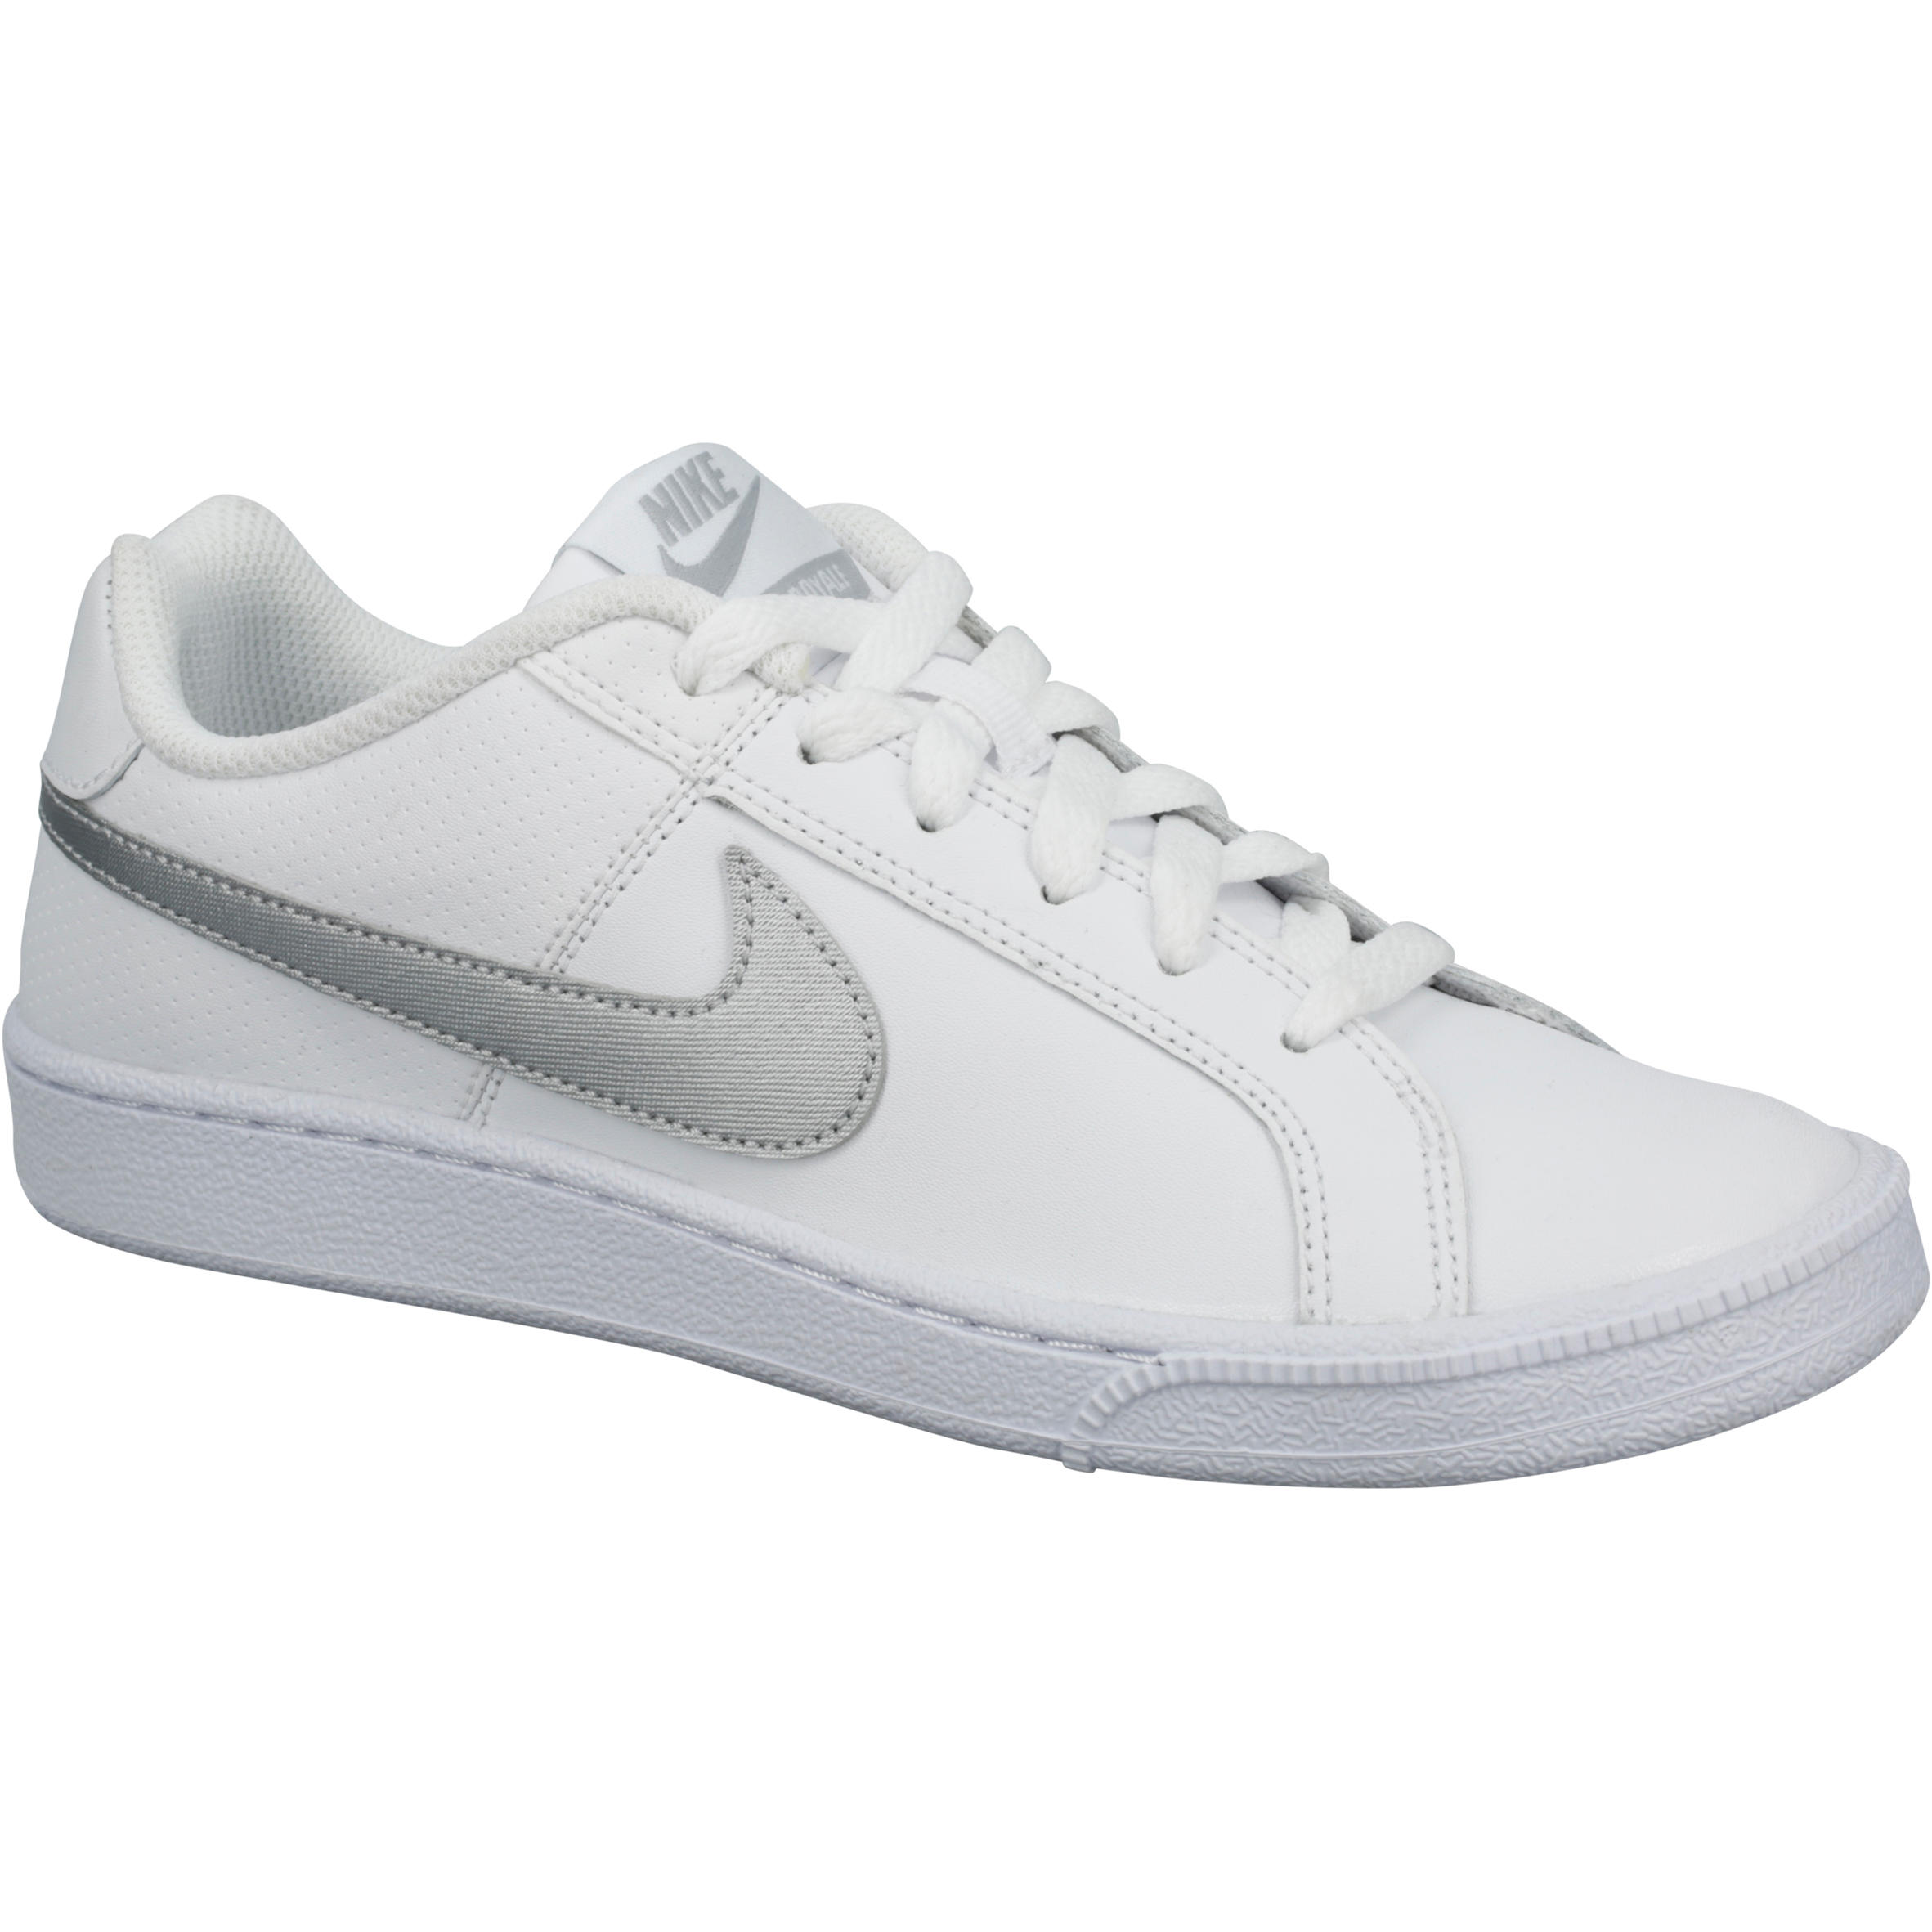 chaussures femme nike blanche